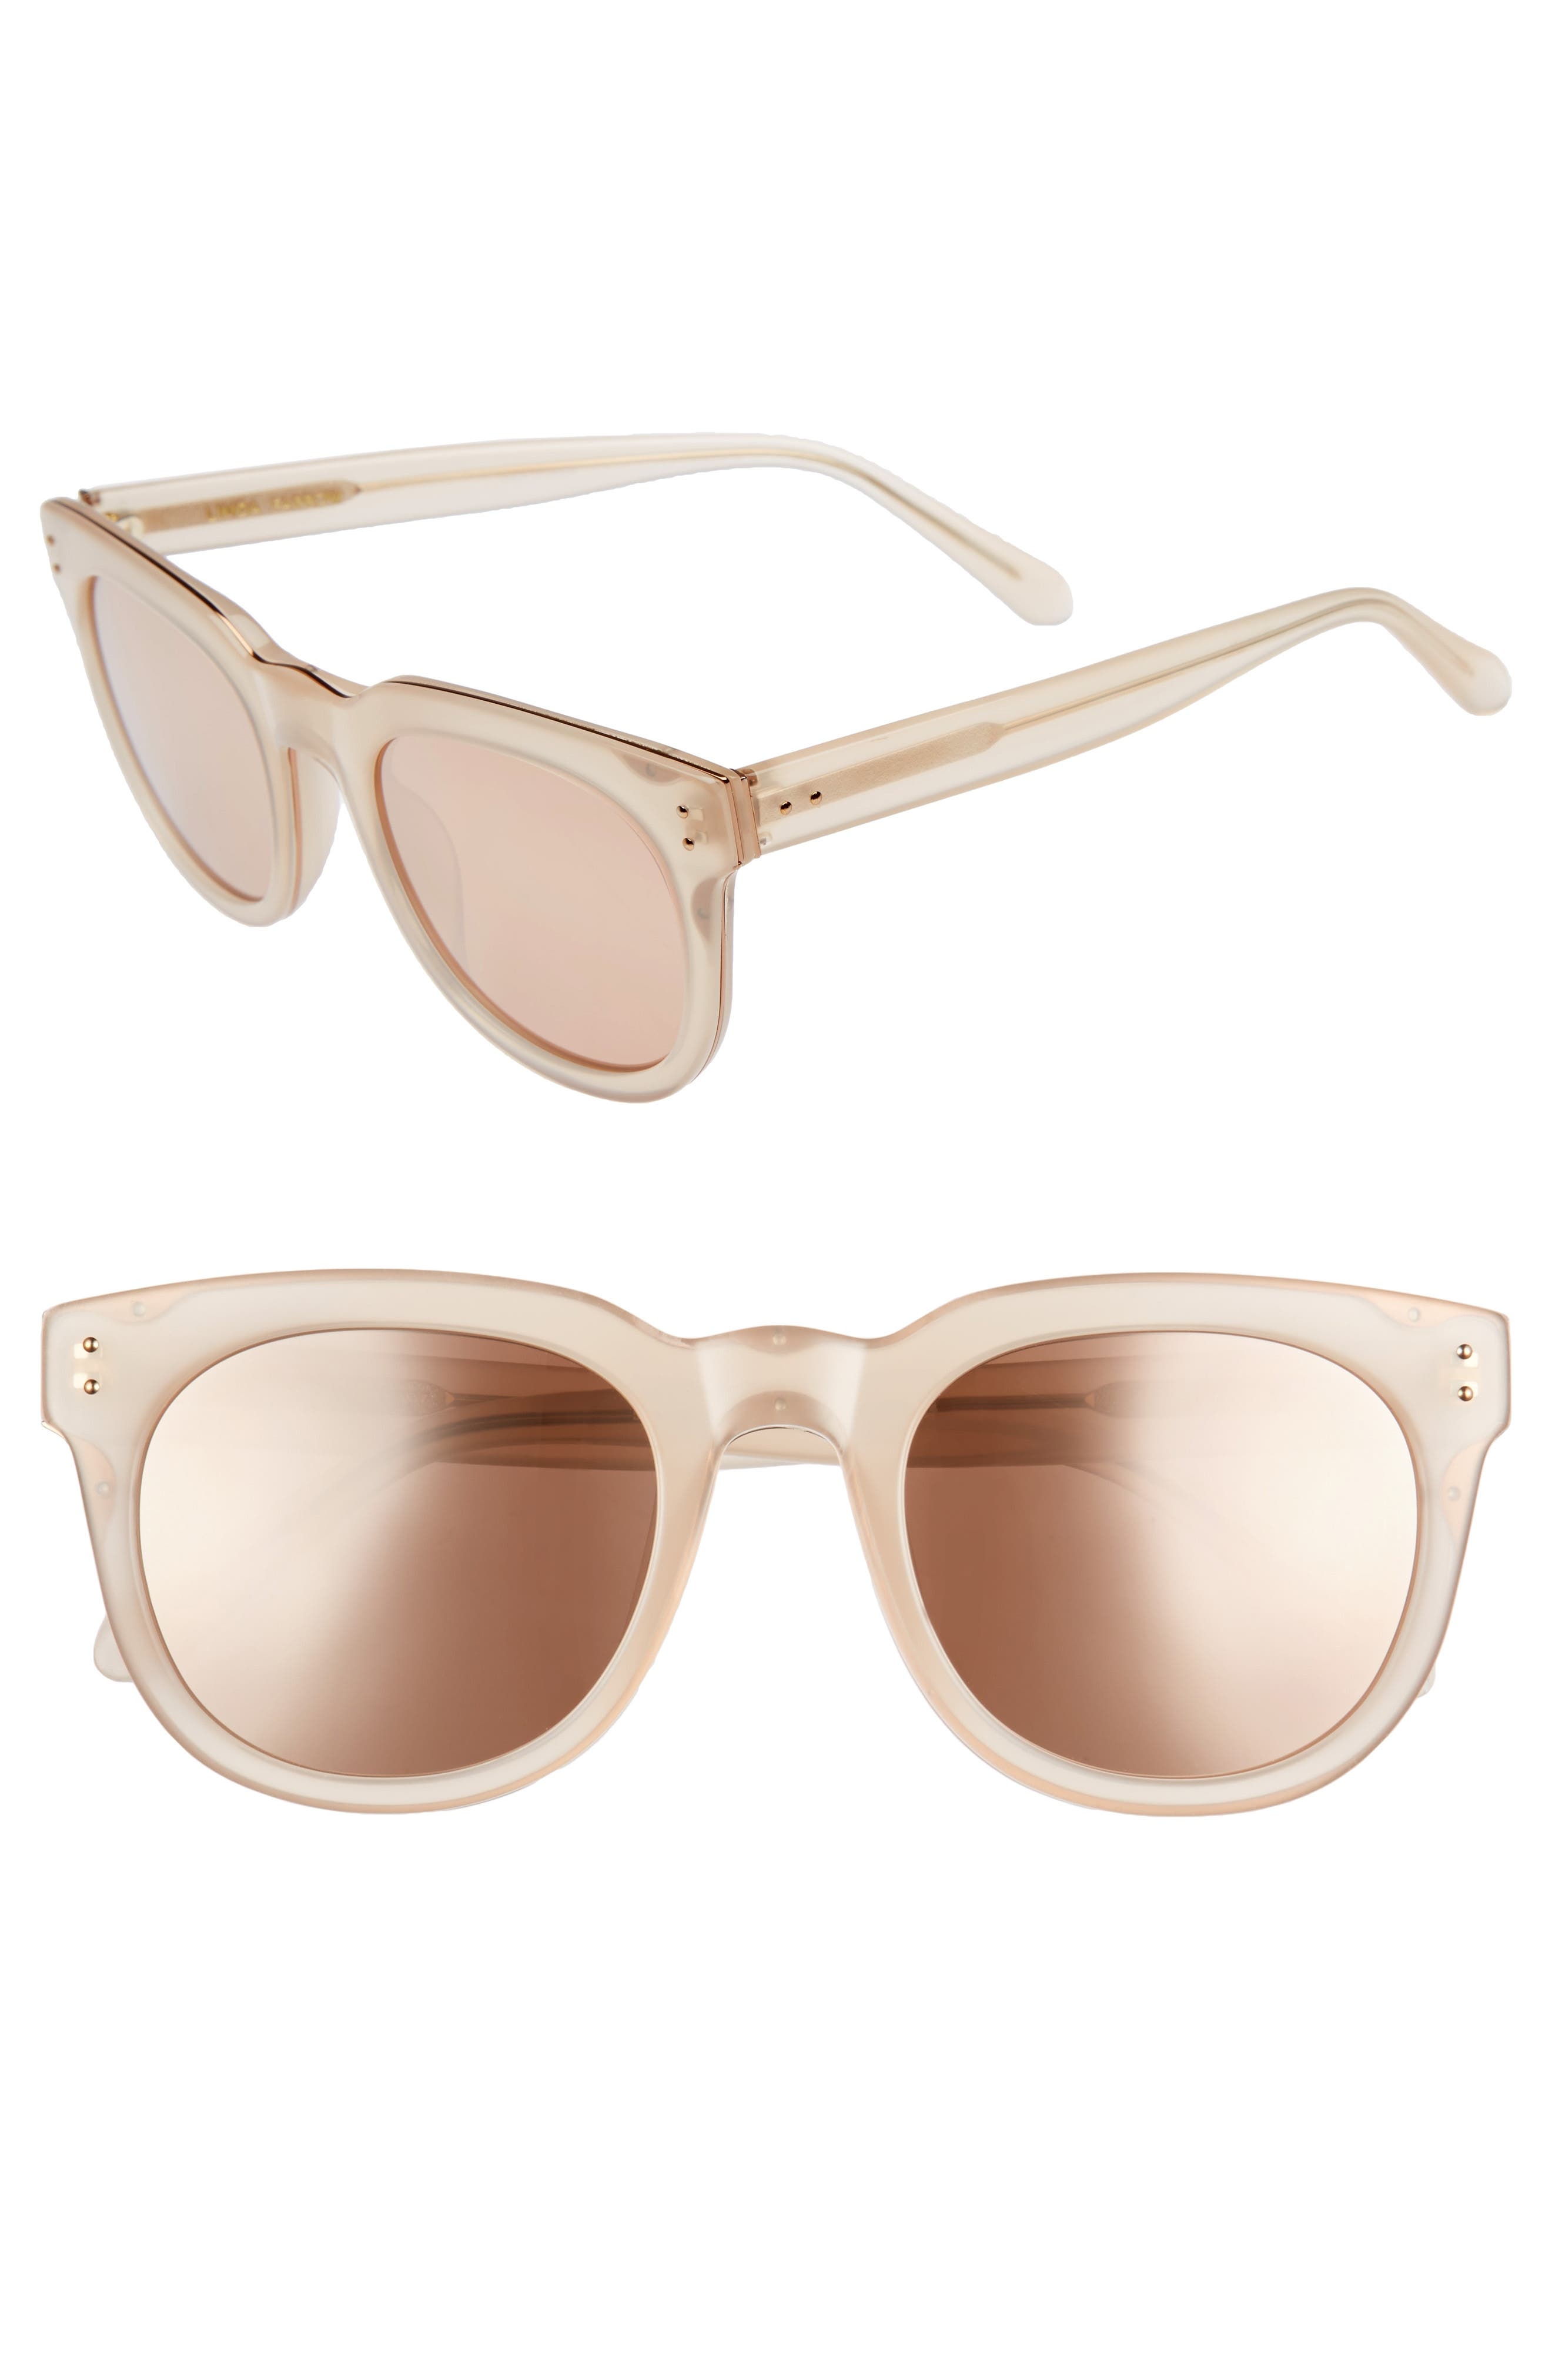 50mm D-Frame Mirrored Sunglasses,                         Main,                         color, 950